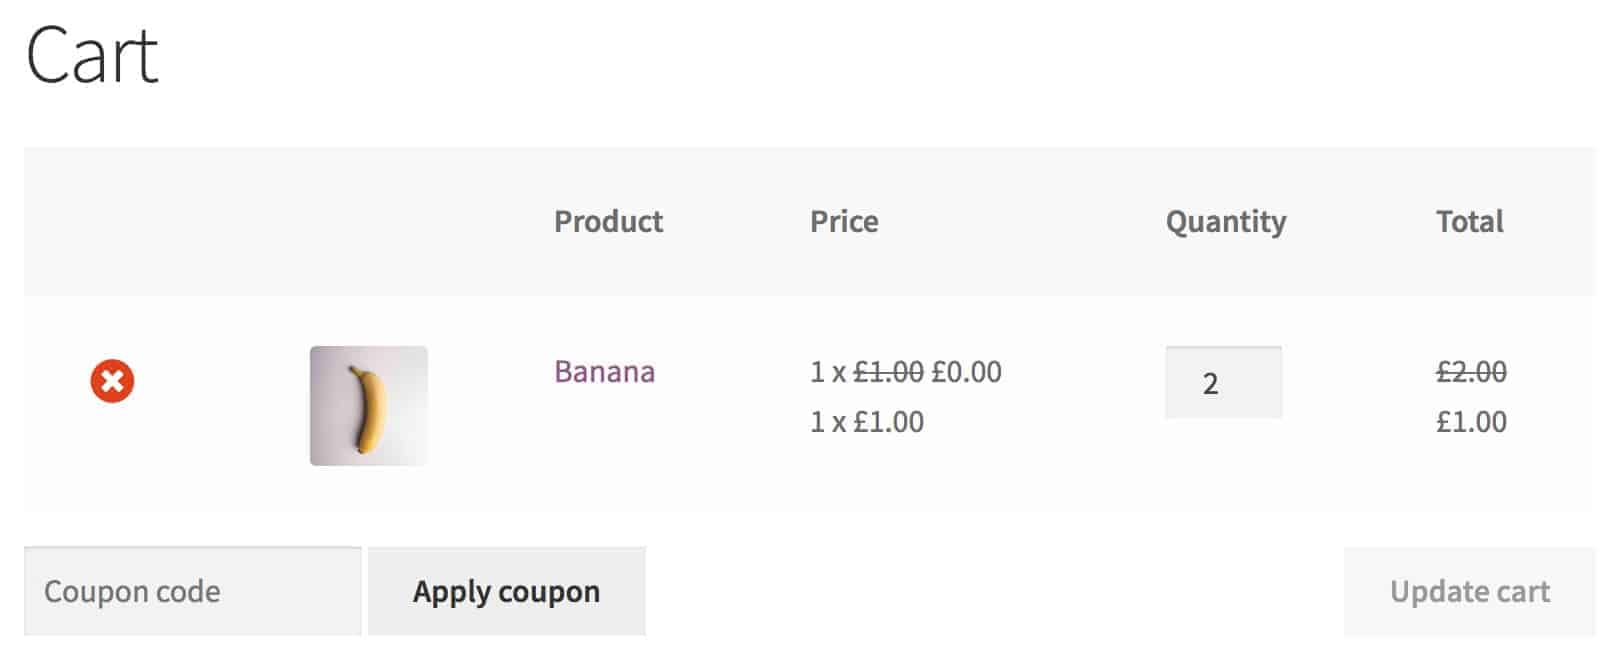 WooCommerce dynamic pricing rule in cart - buy one get one free